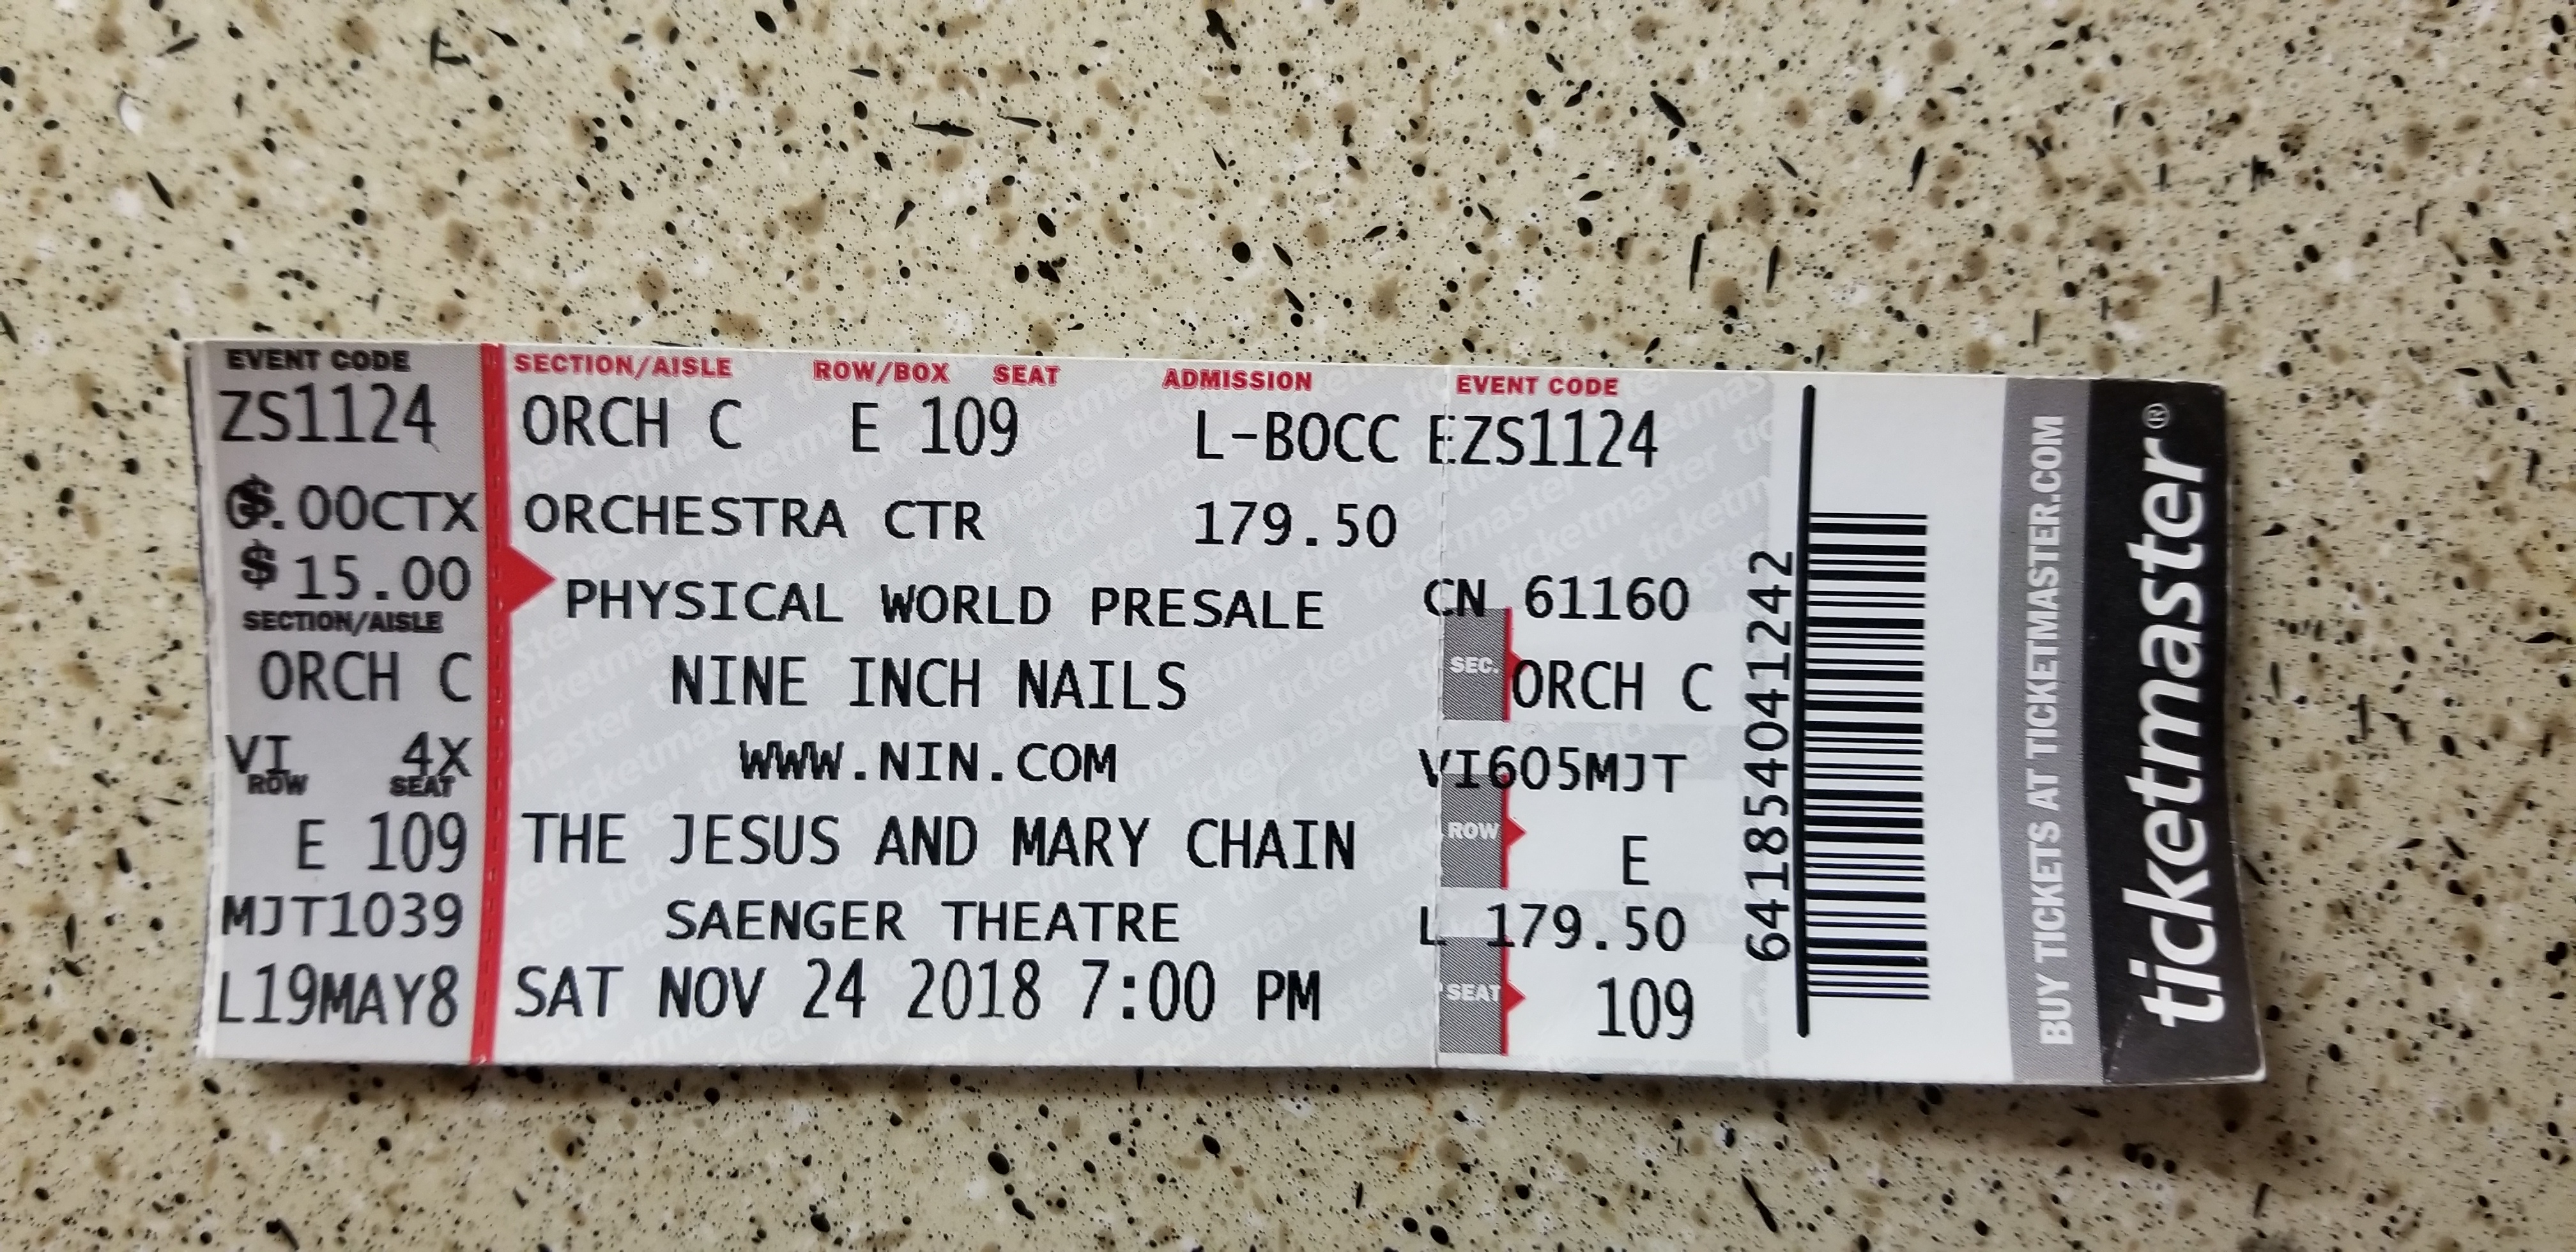 11/24/2018 NOLA Night 2 Ticket